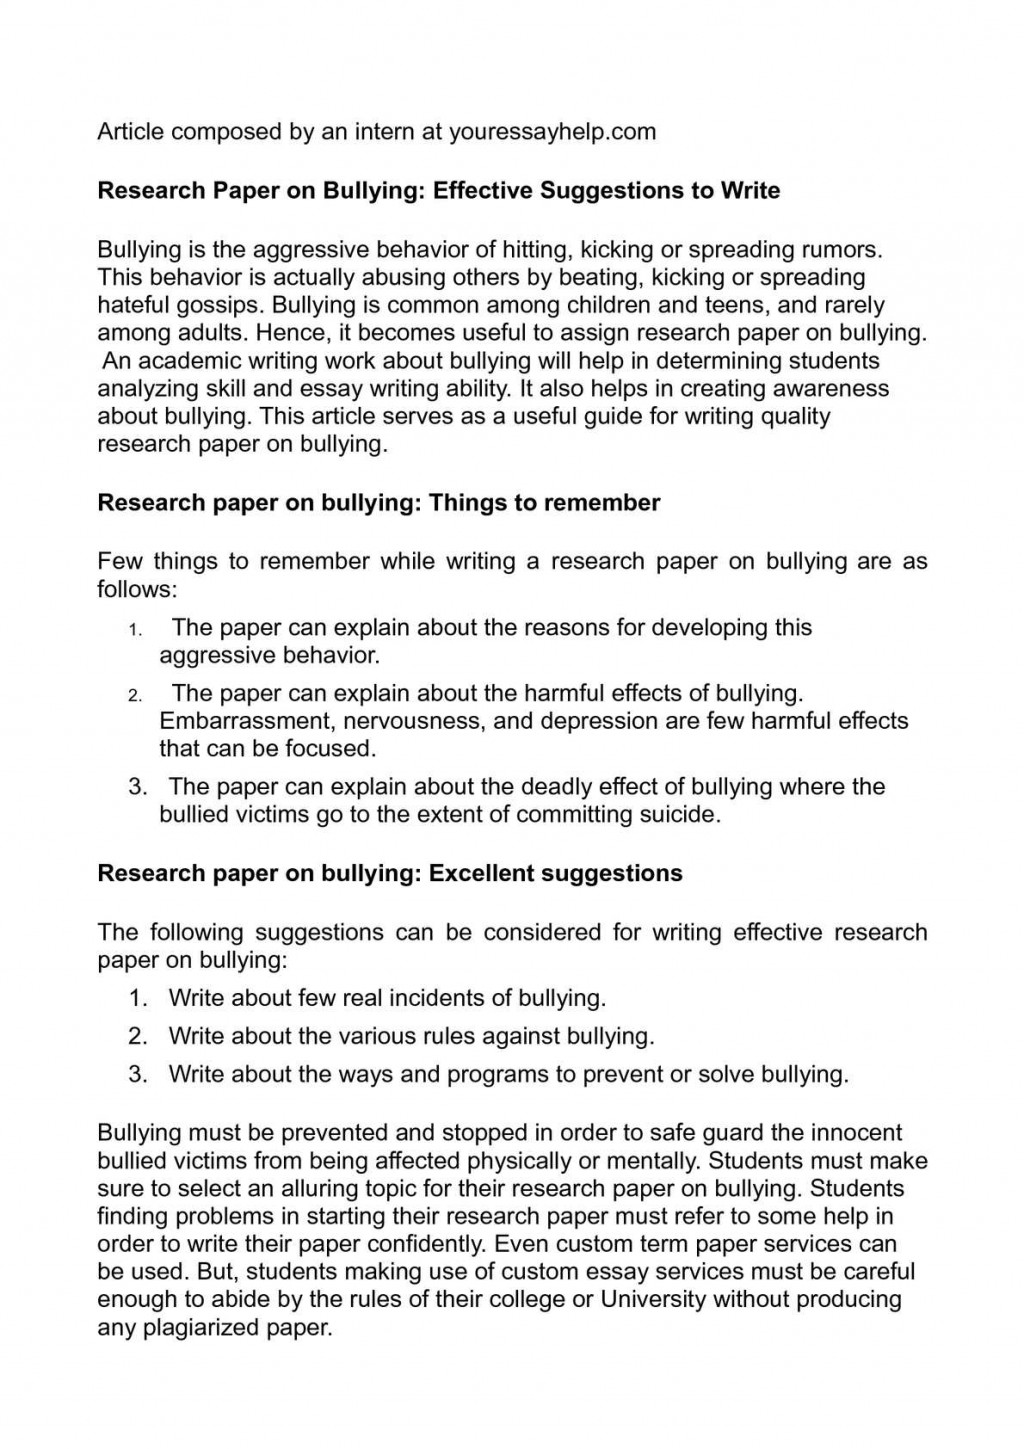 002 Researchs About Bullying P1 Stunning Research Papers Articles On Pdf Paper Cyberbullying Large